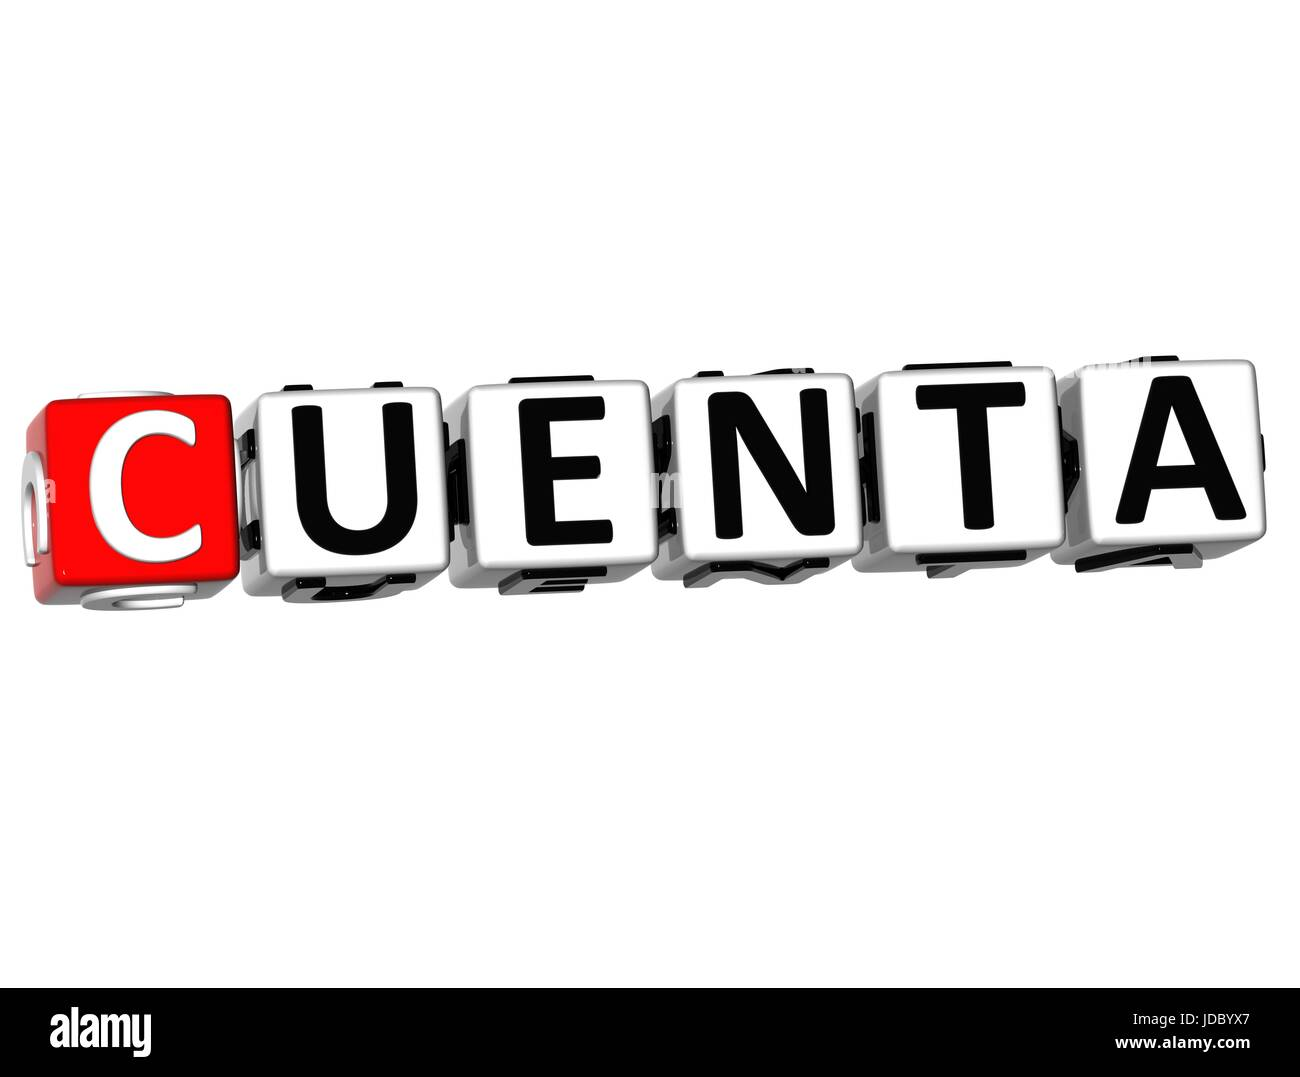 3D Cuenta Block Text on white background - Stock Image